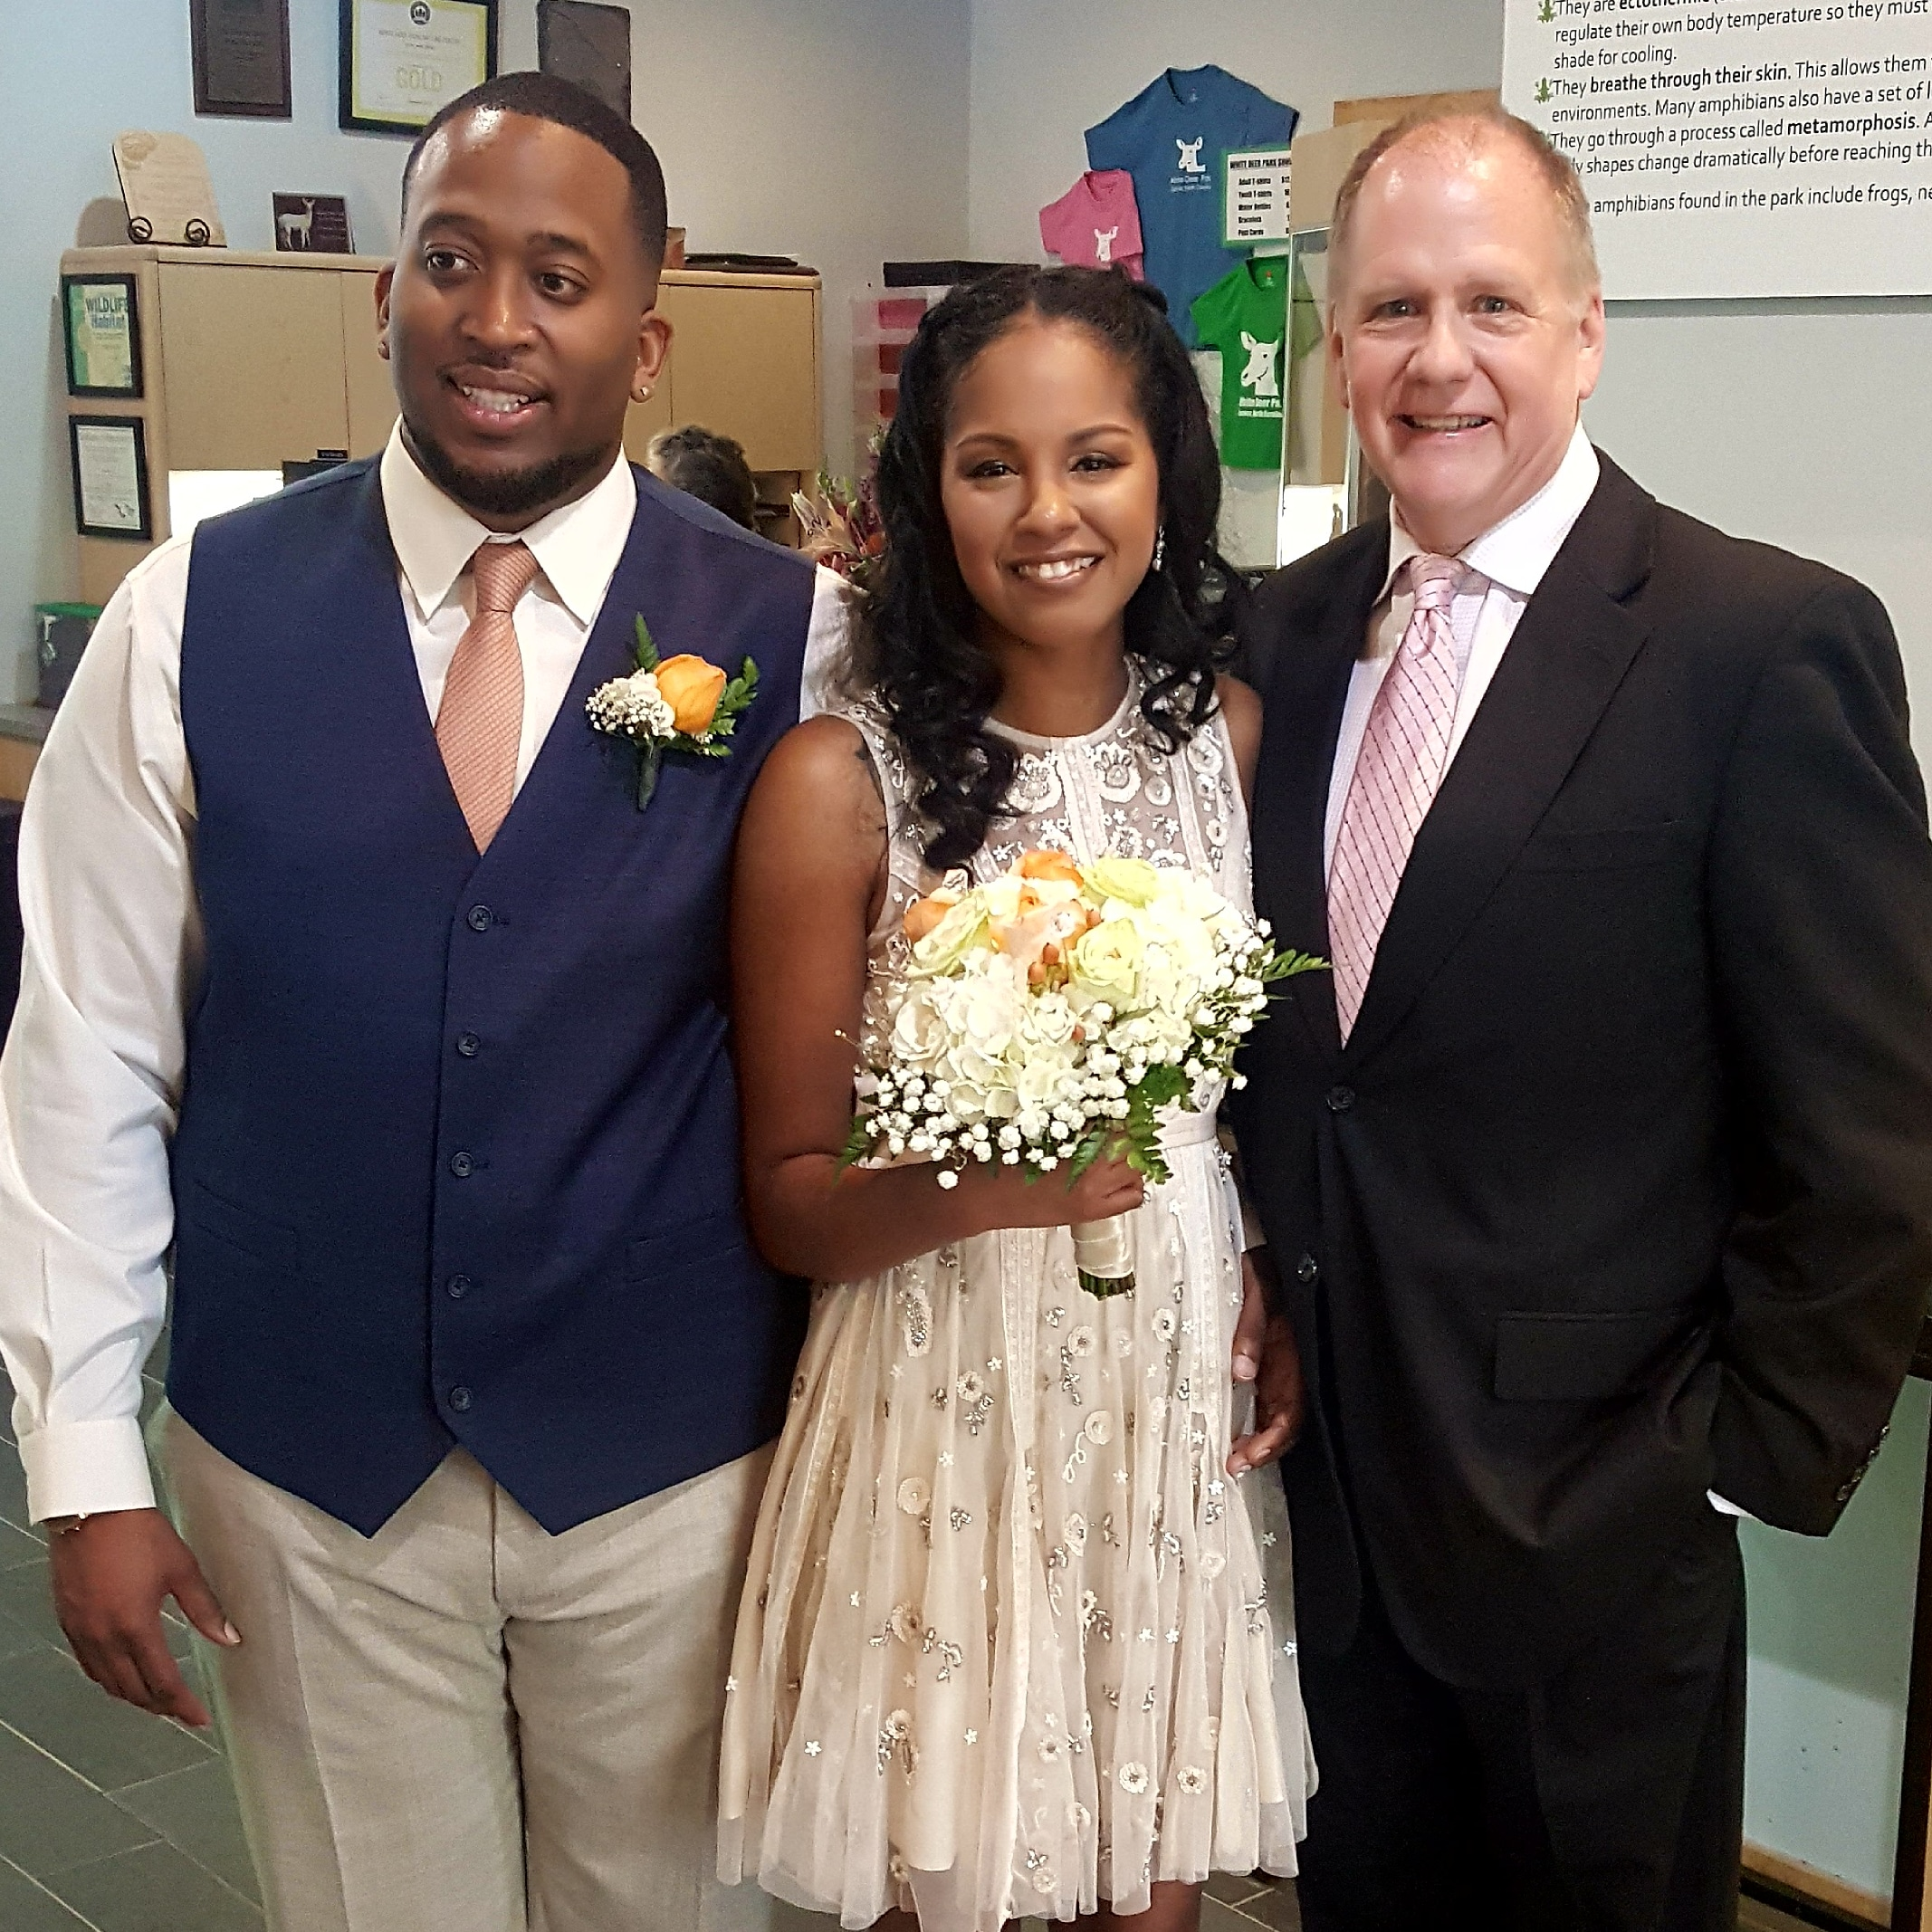 Raleigh Wedding Officiant